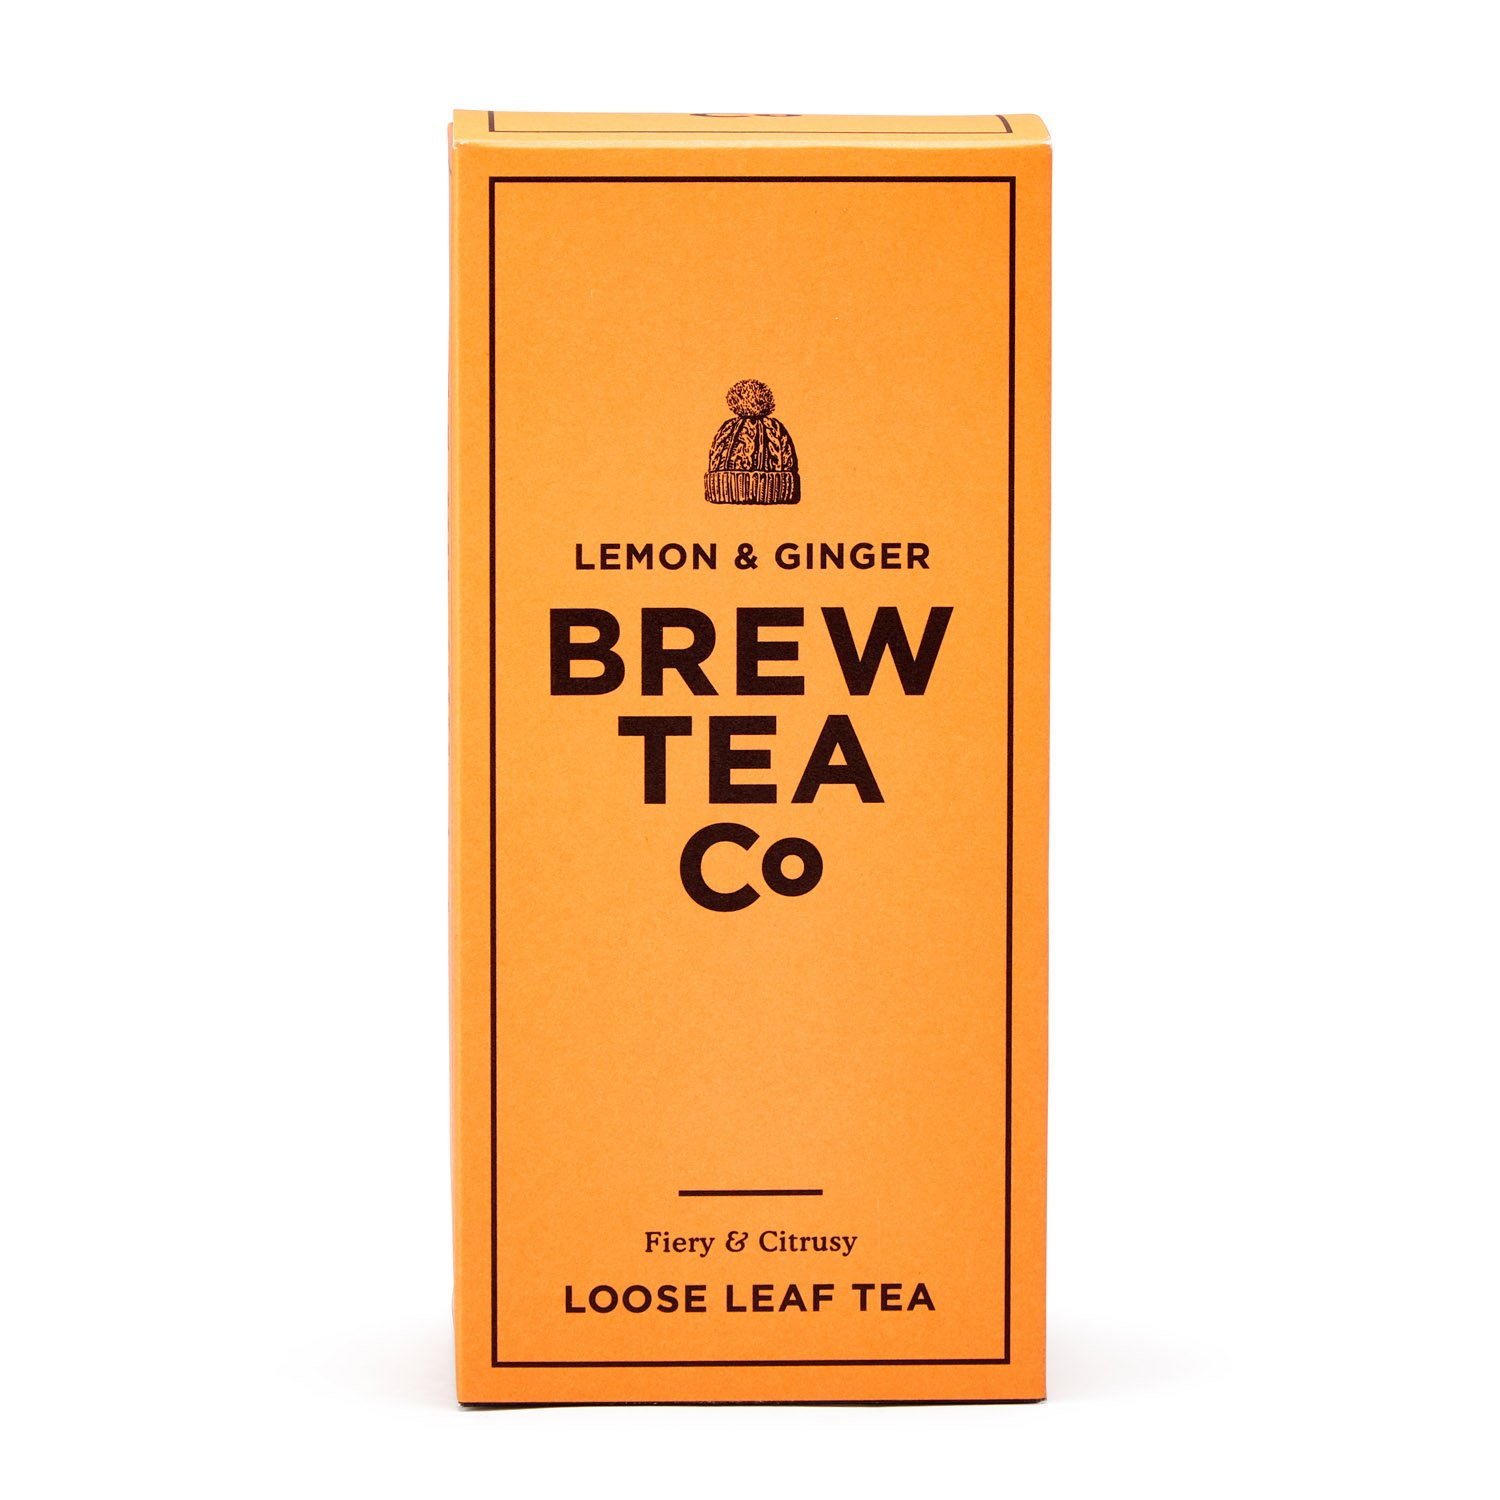 Lemon and Ginger Loose Leaf Tea 113g Brew Tea Co